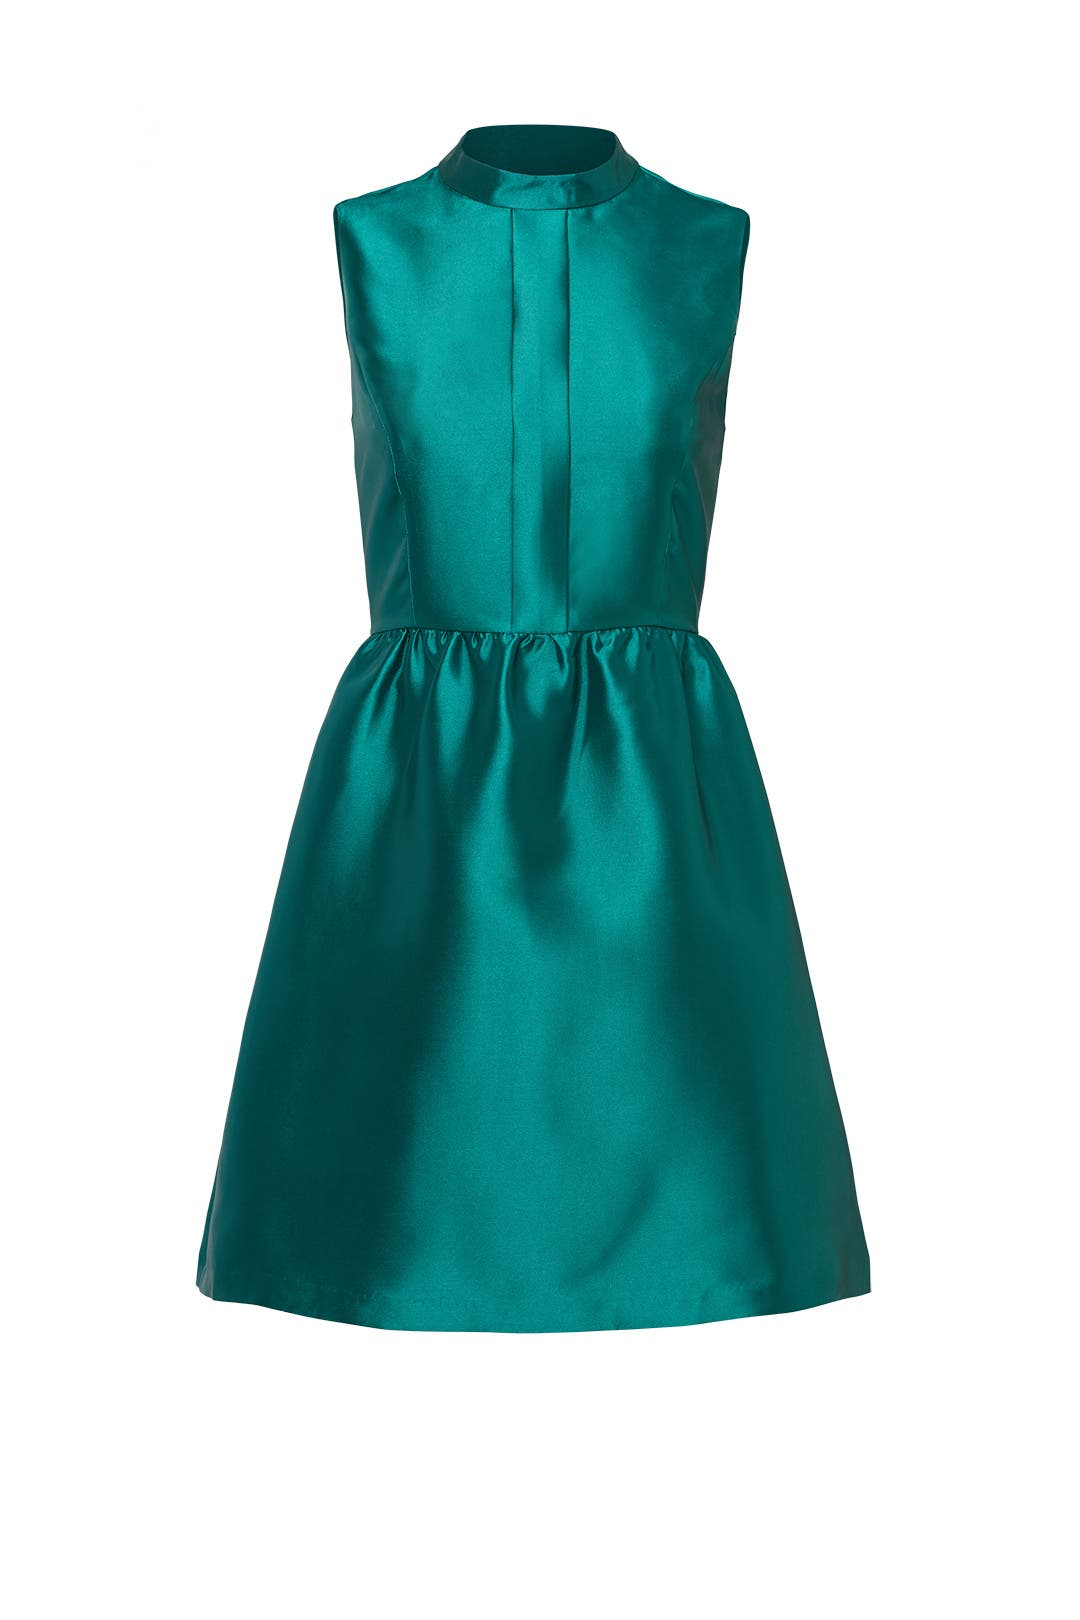 Emerald Satin Belle Dress by Slate & Willow for $50   Rent the Runway